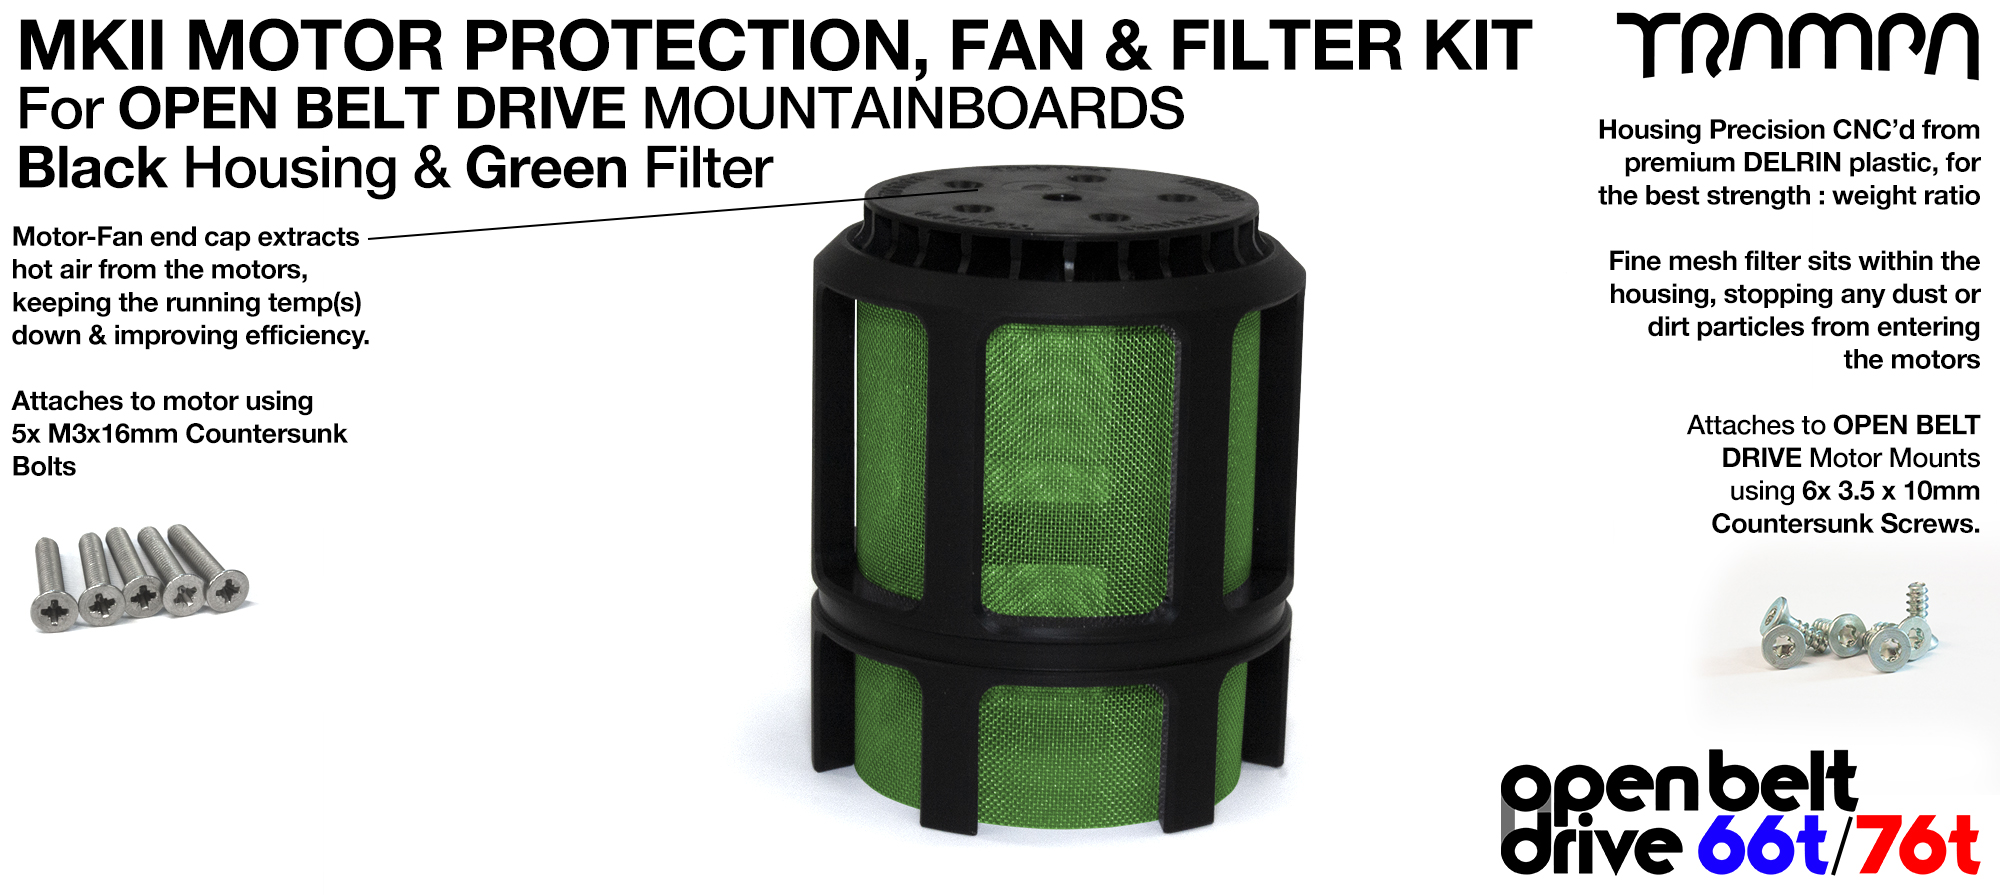 1x OBD MKII Motor protection Sleeve with GREEN Filter